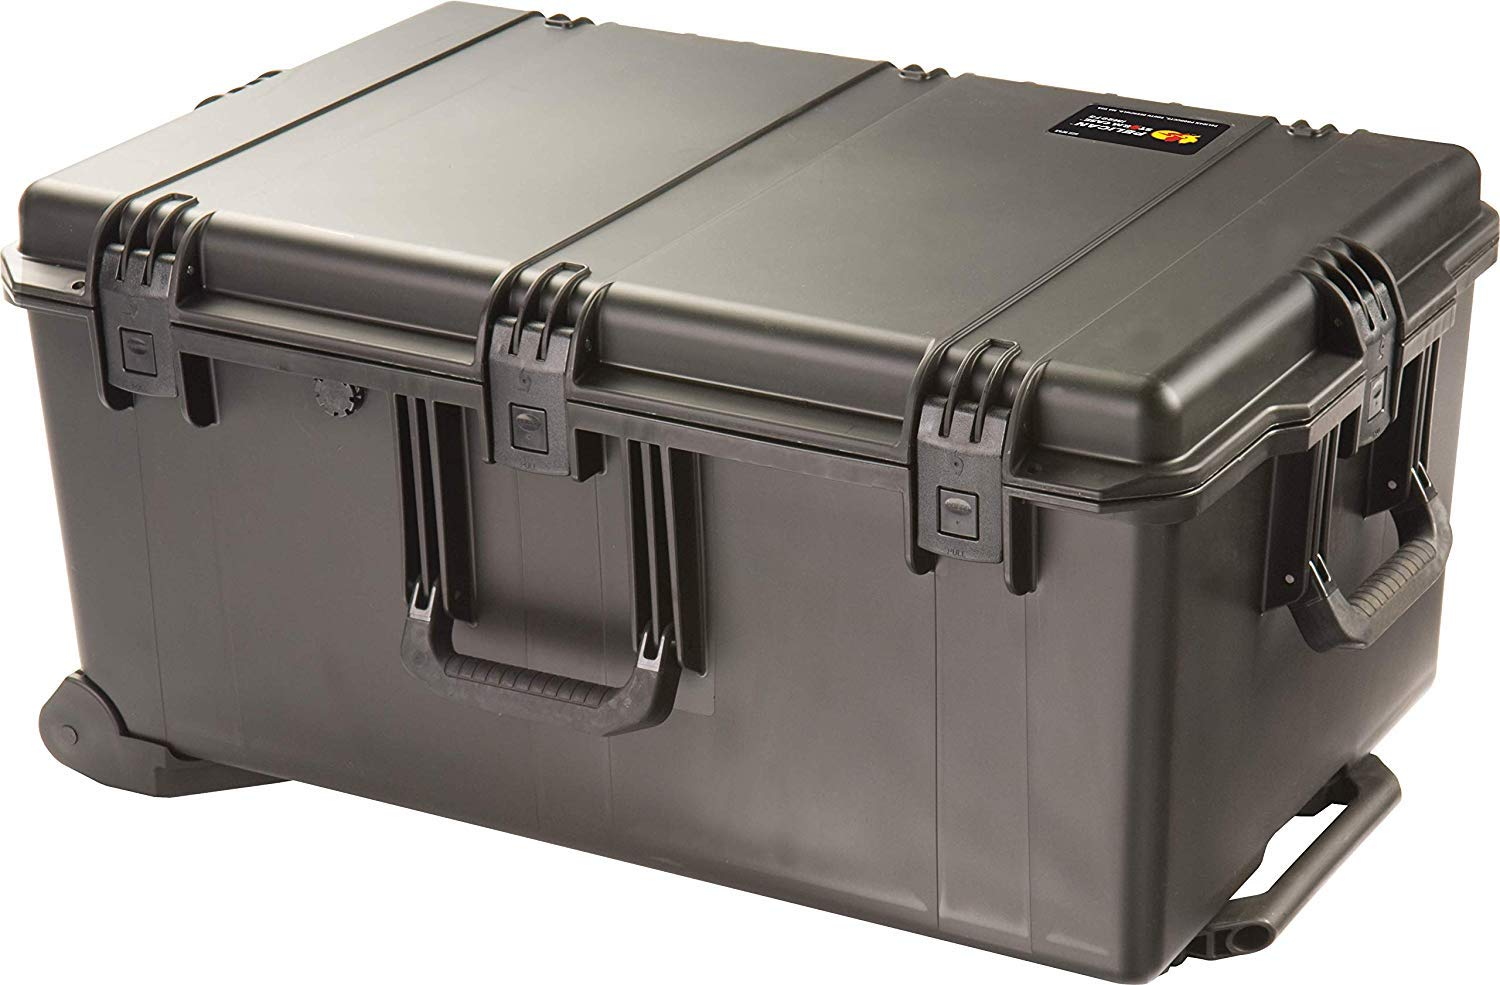 Pelican Storm iM2975 Case No Foam